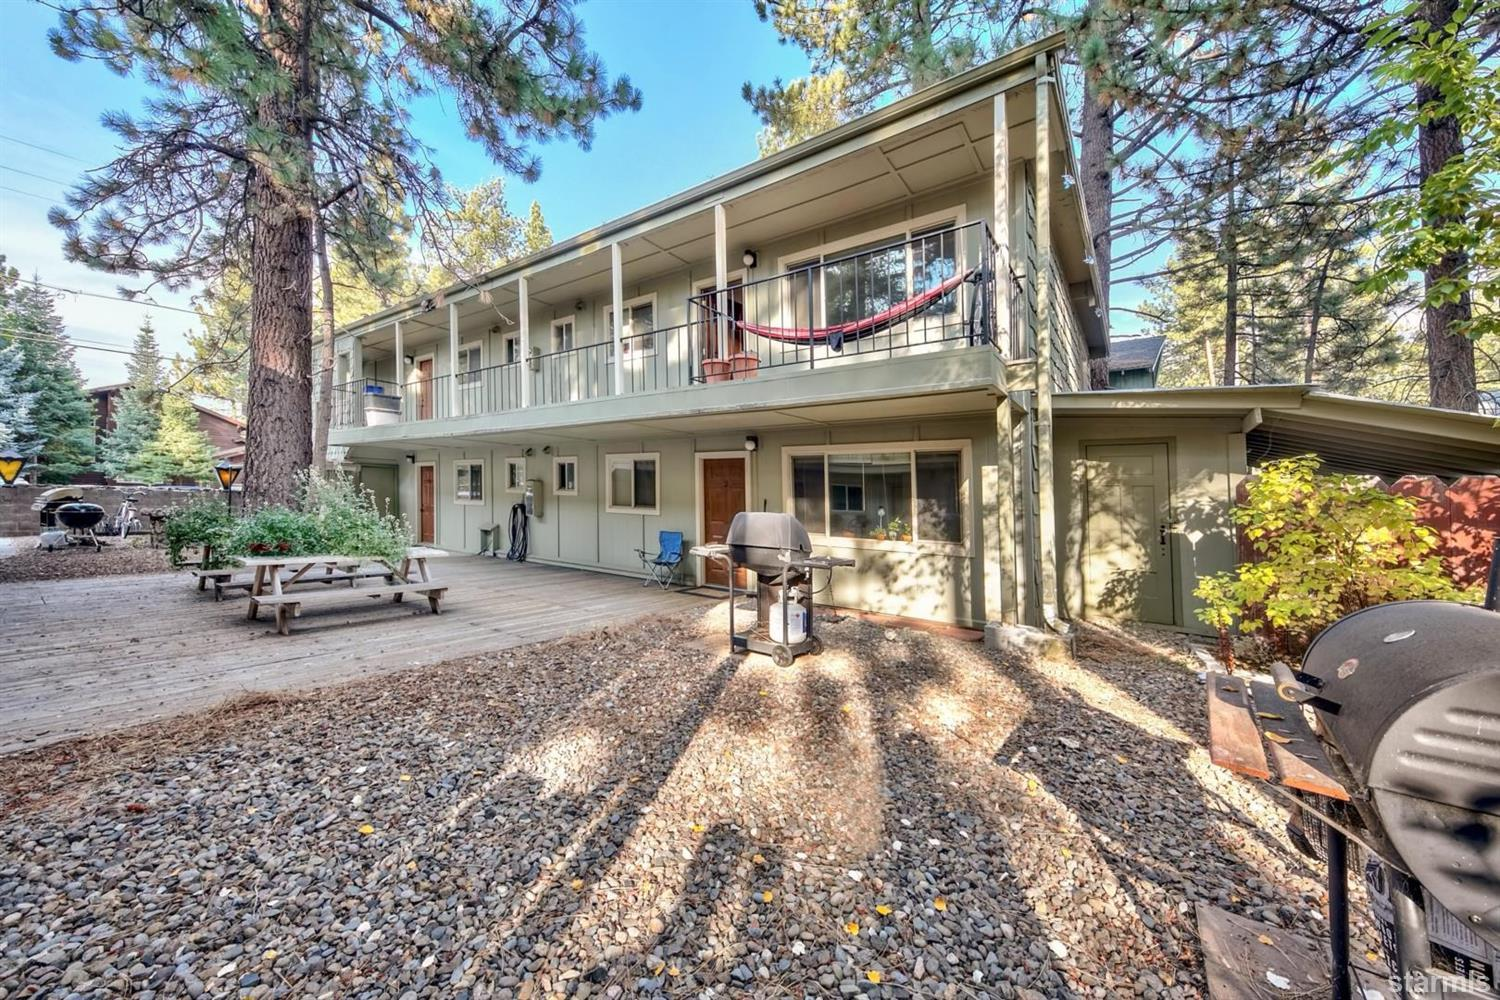 Image for 878 Lakeview Avenue, South Lake Tahoe, CA 96150